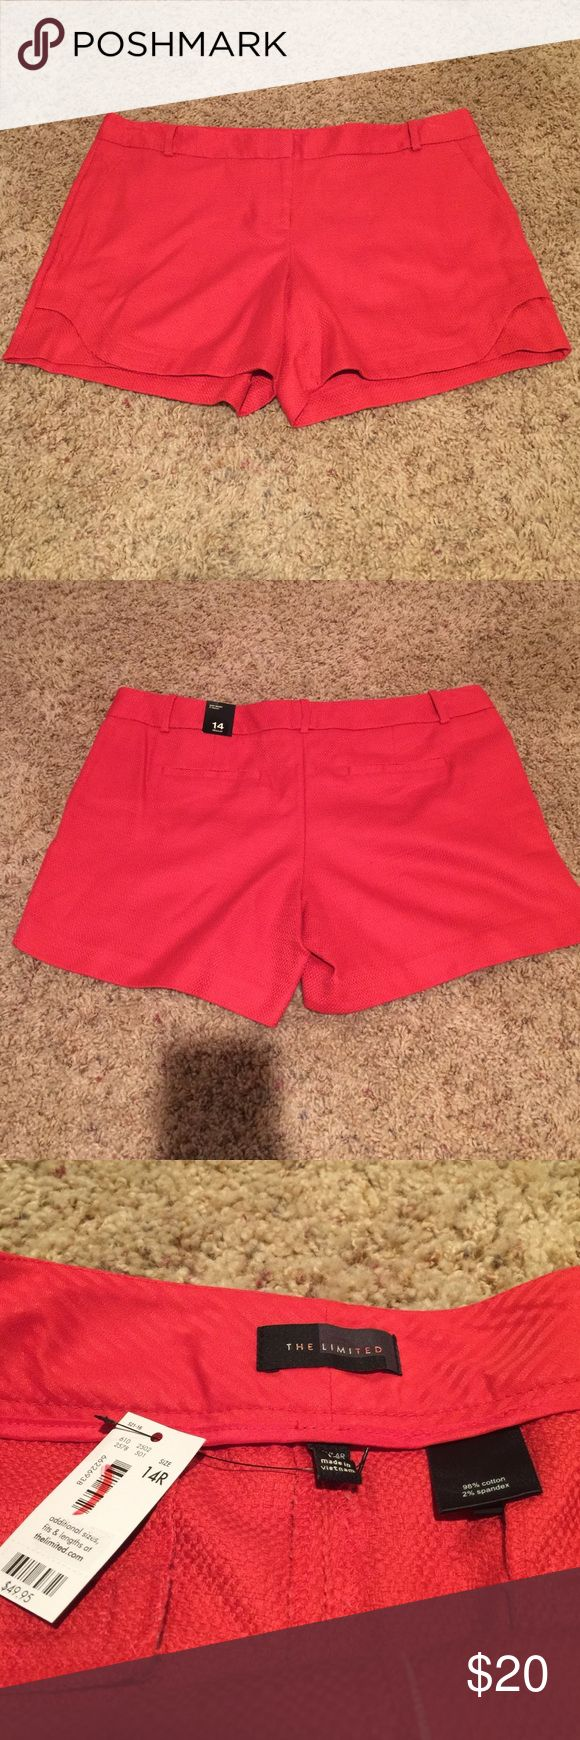 "The Limited 14R Easy short Red women's shorts NWT The Limited red shorts. Women's size 14R easy short with a 5"" inseam. 98% cotton 2% spandex. Cute detail on the sides (see photo) The Limited Shorts"